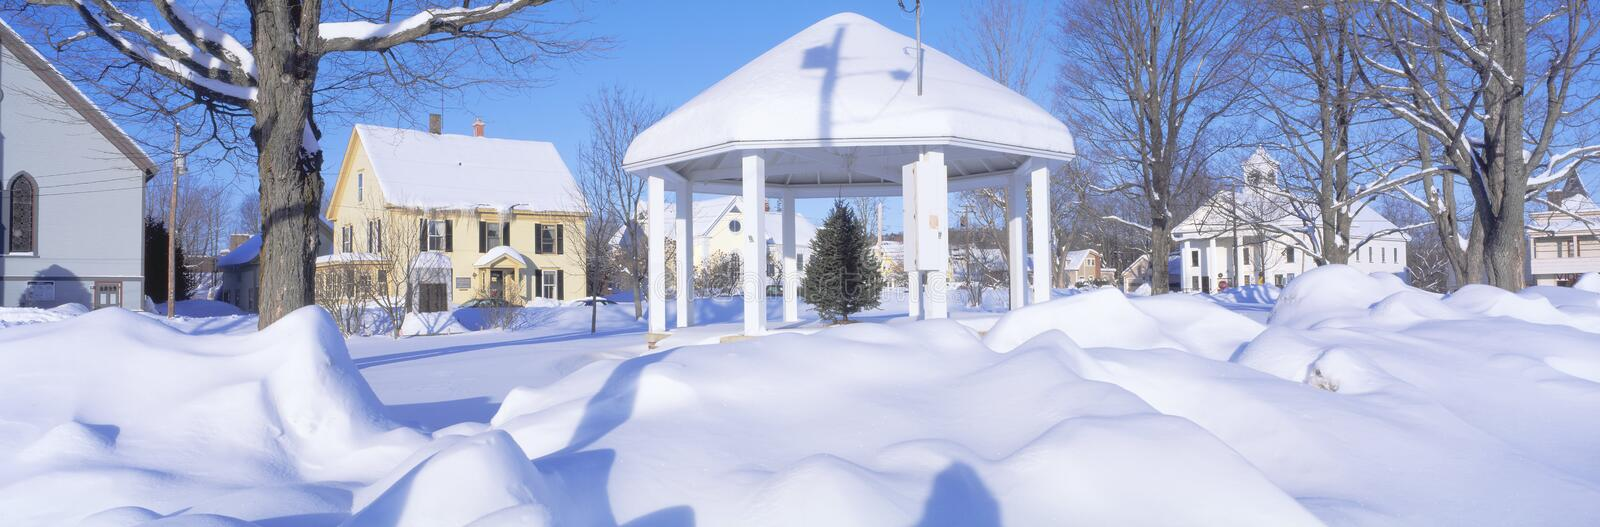 Gazebo and town in winter, Danville, Vermont royalty free stock images